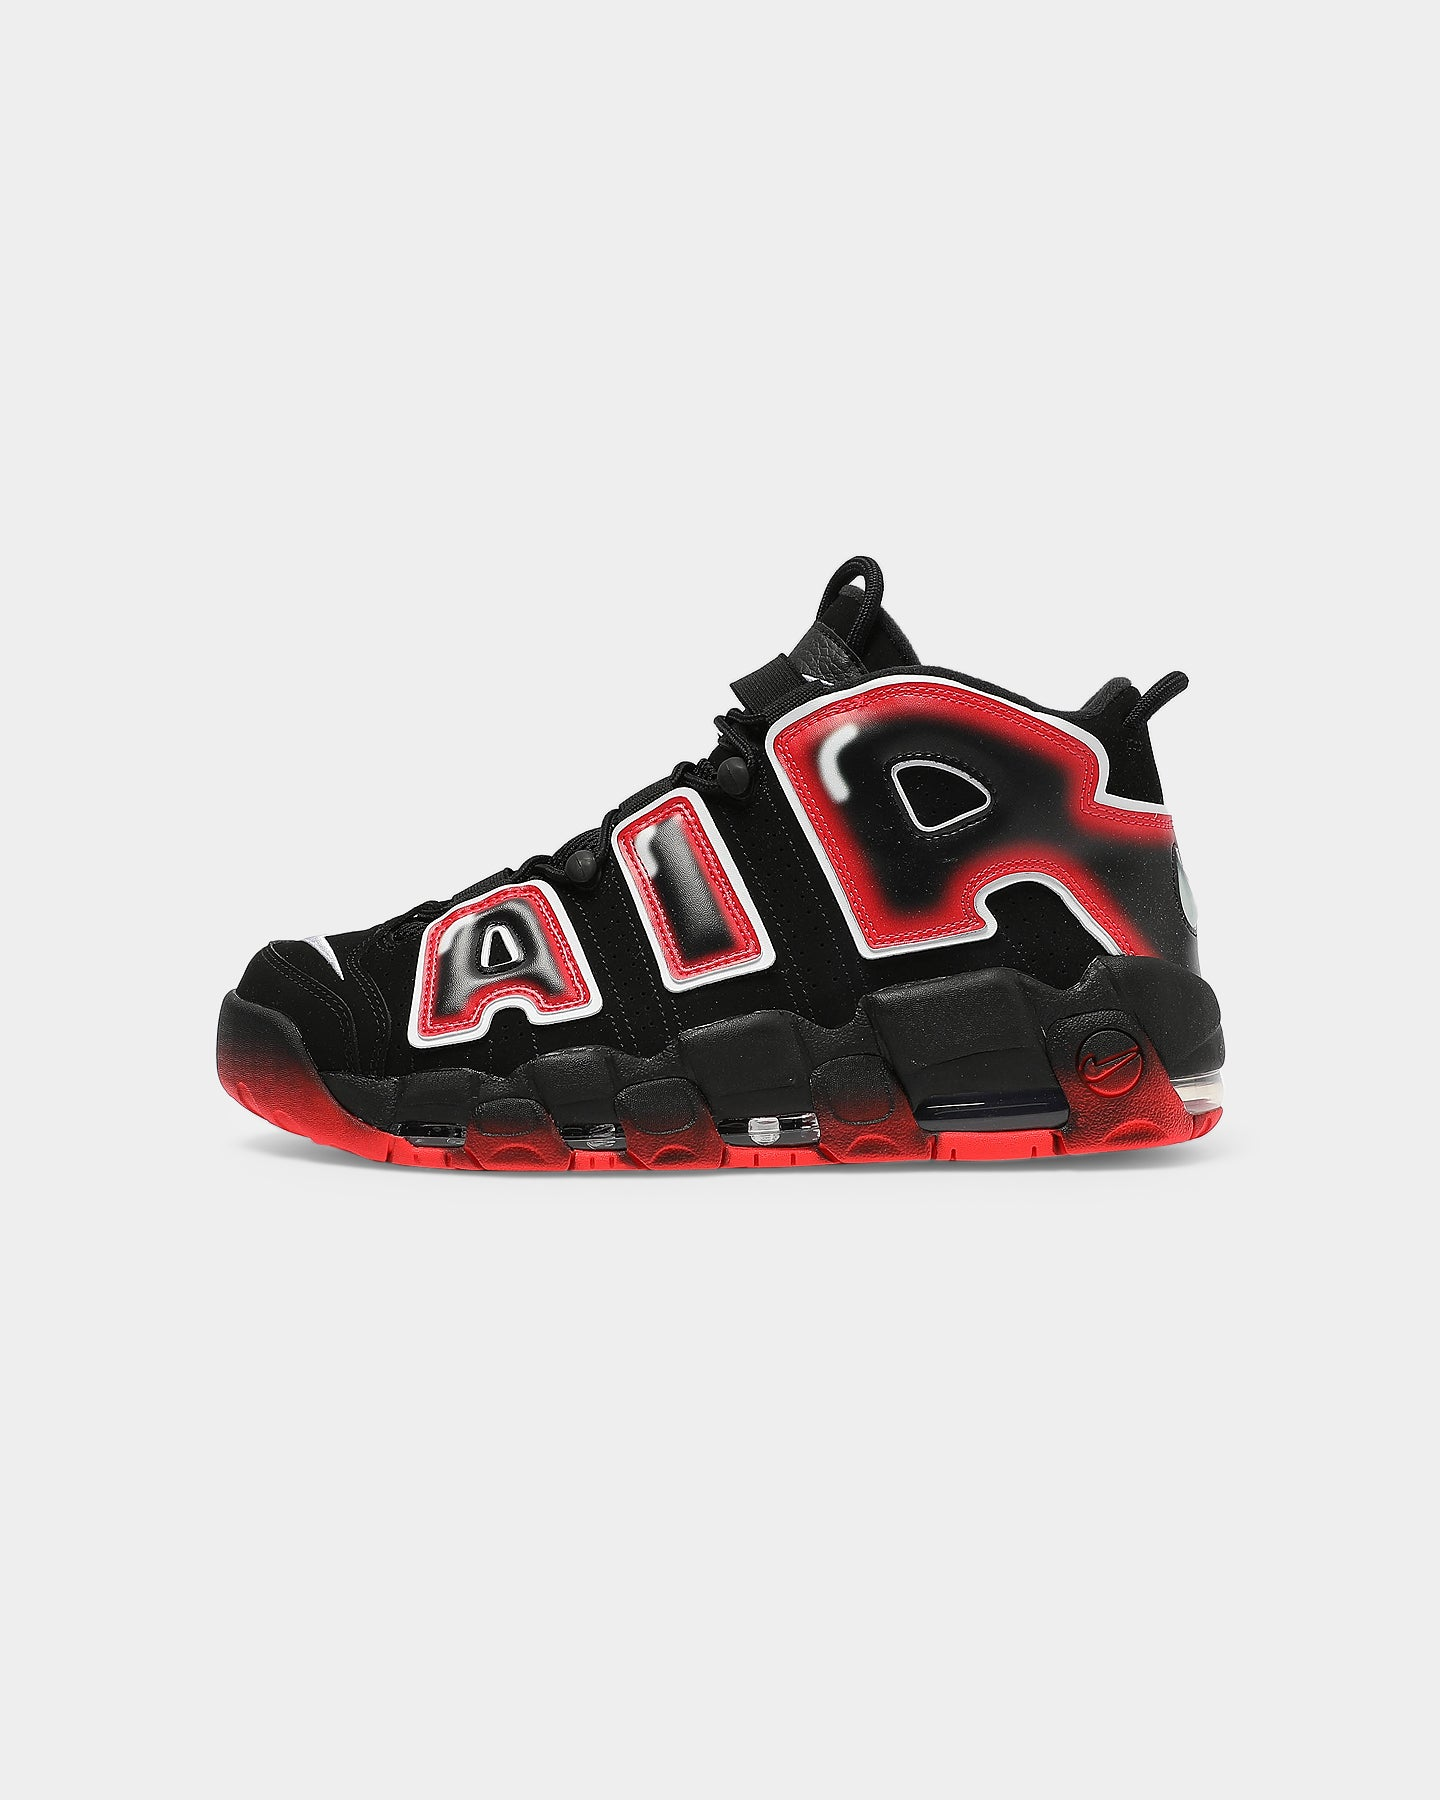 the new uptempos